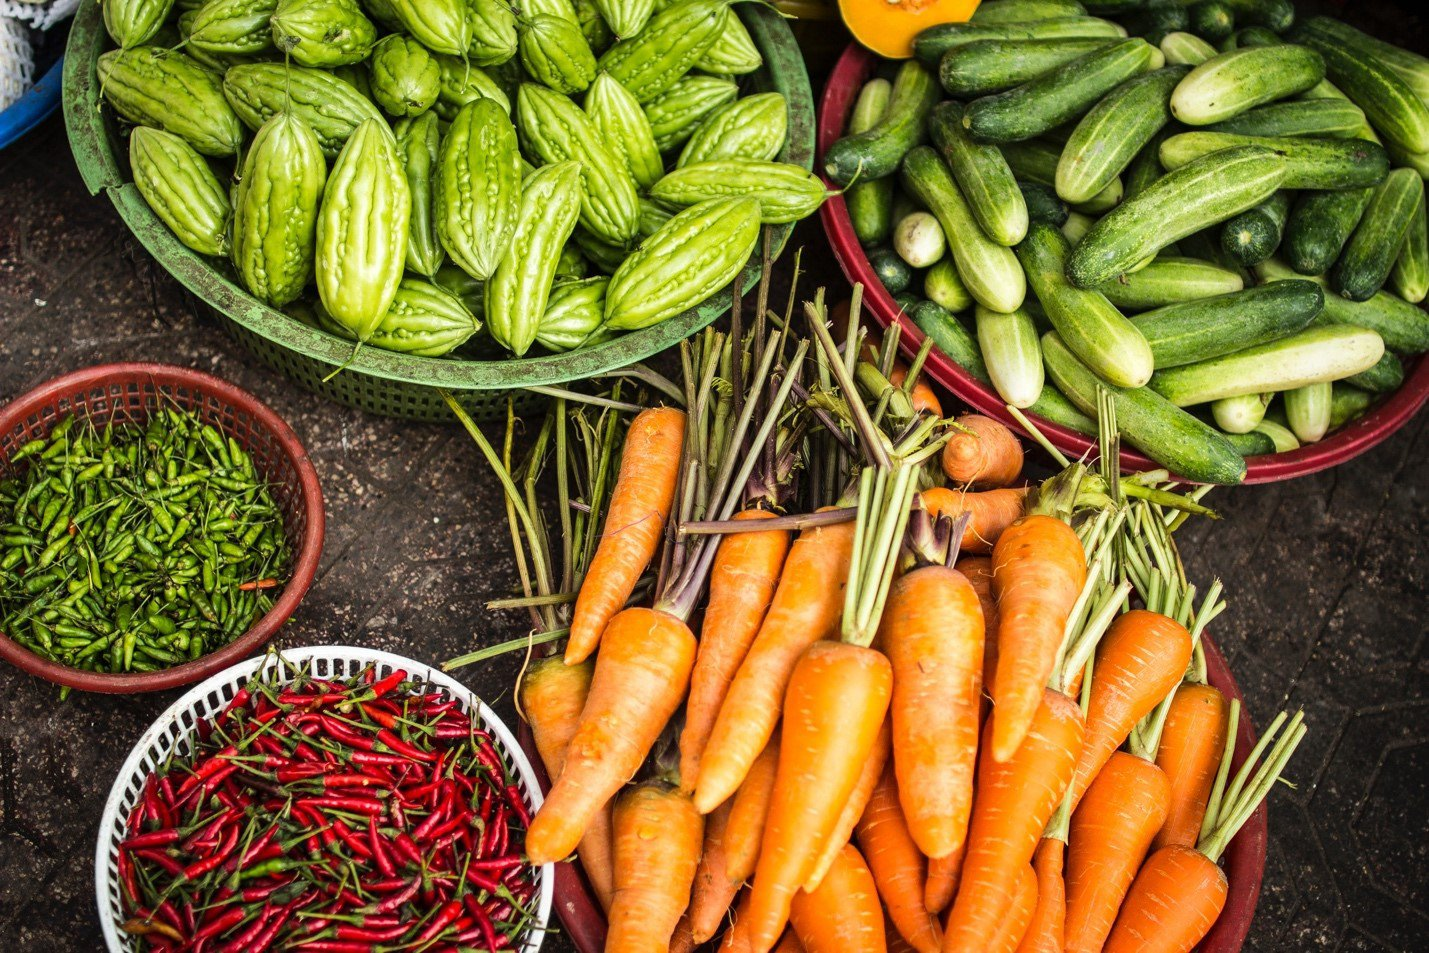 Buying Local Vegetables